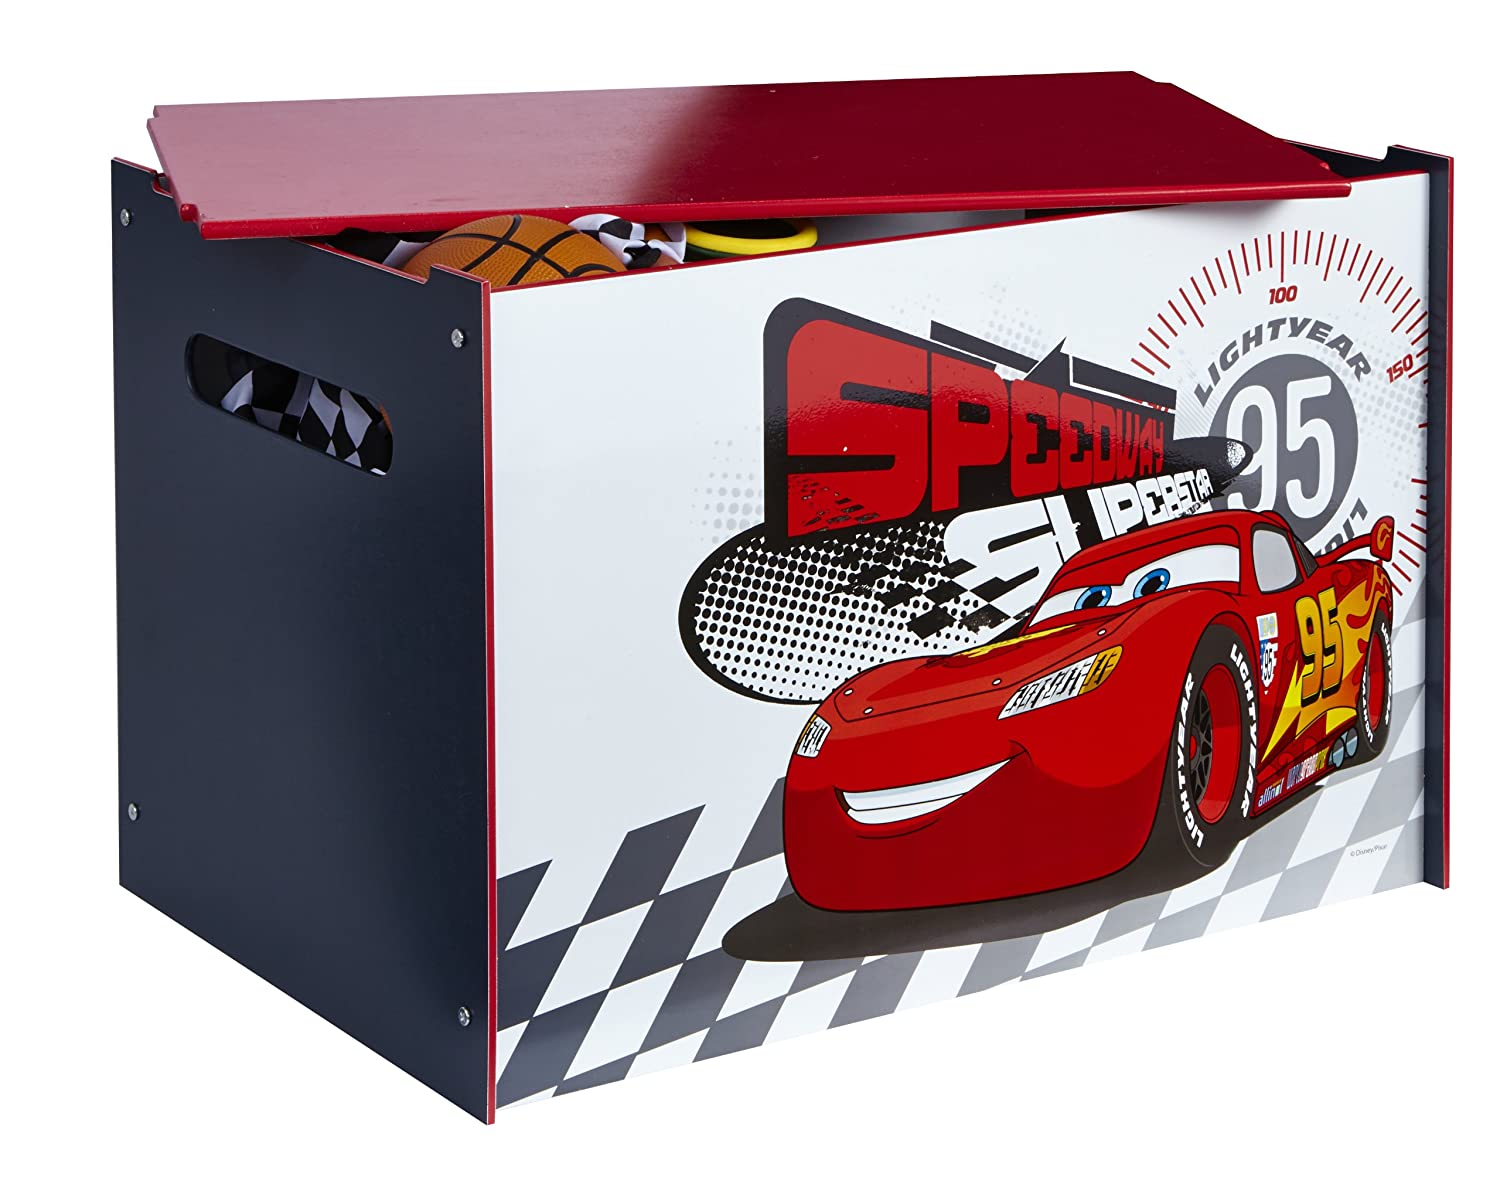 Disney Cars Kids Toy Box - Childrens Bedroom Storage Chest with Bench Lid by HelloHome Worlds Apart 474CAP